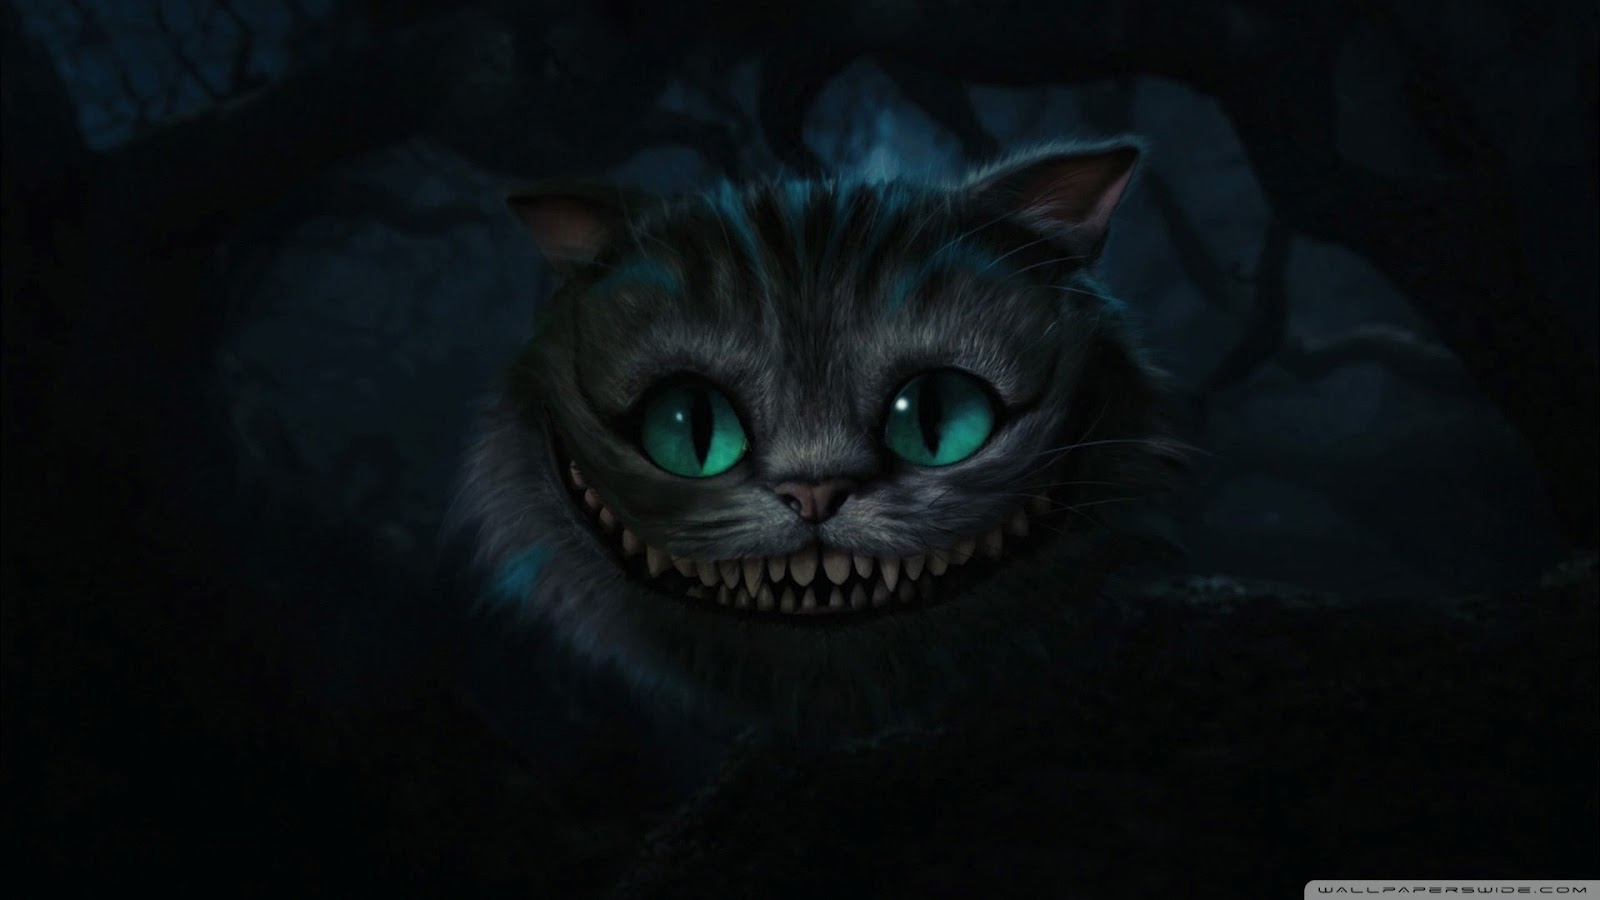 cheshire-cat-alice-in-wonderland-1920x1080-%C3%97-wallpaper-wp3803714